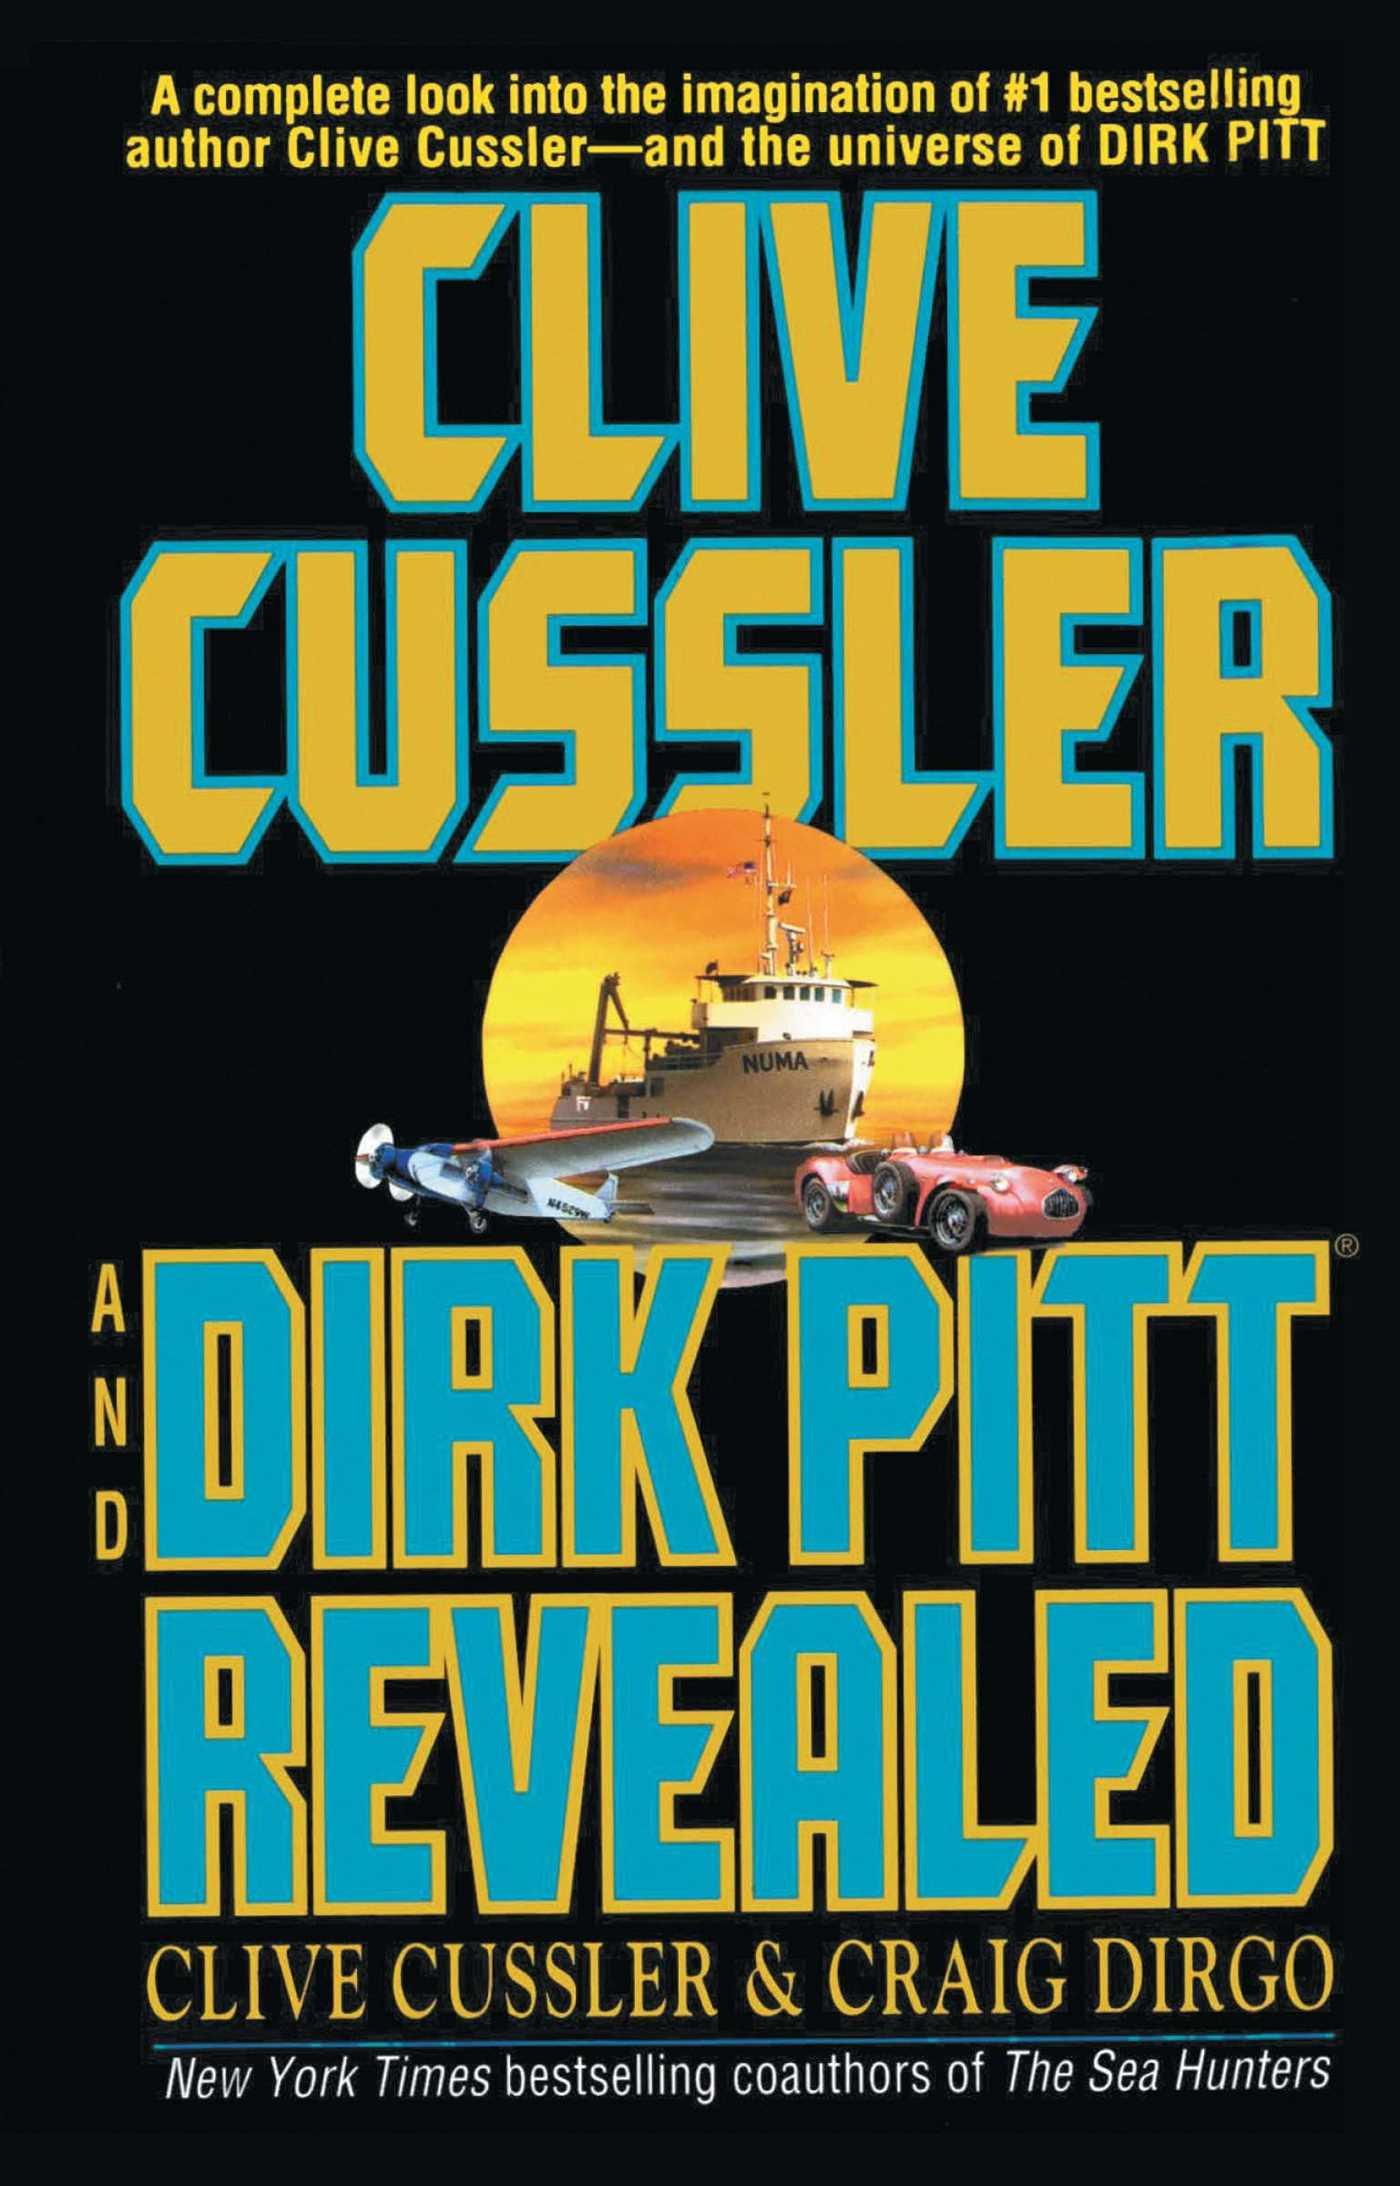 Clive cussler and dirk pitt revealed 9781501162060 hr